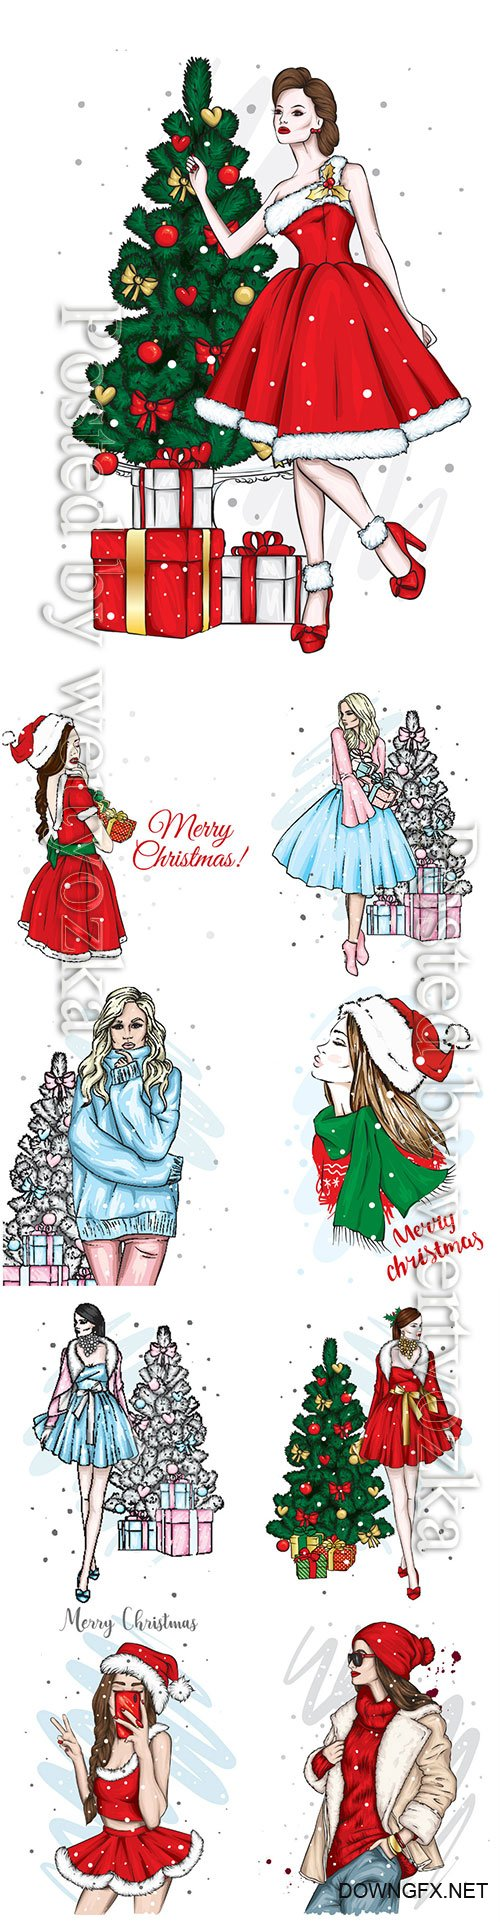 New Year and Christmas, beautiful girl in dress, winter holidays